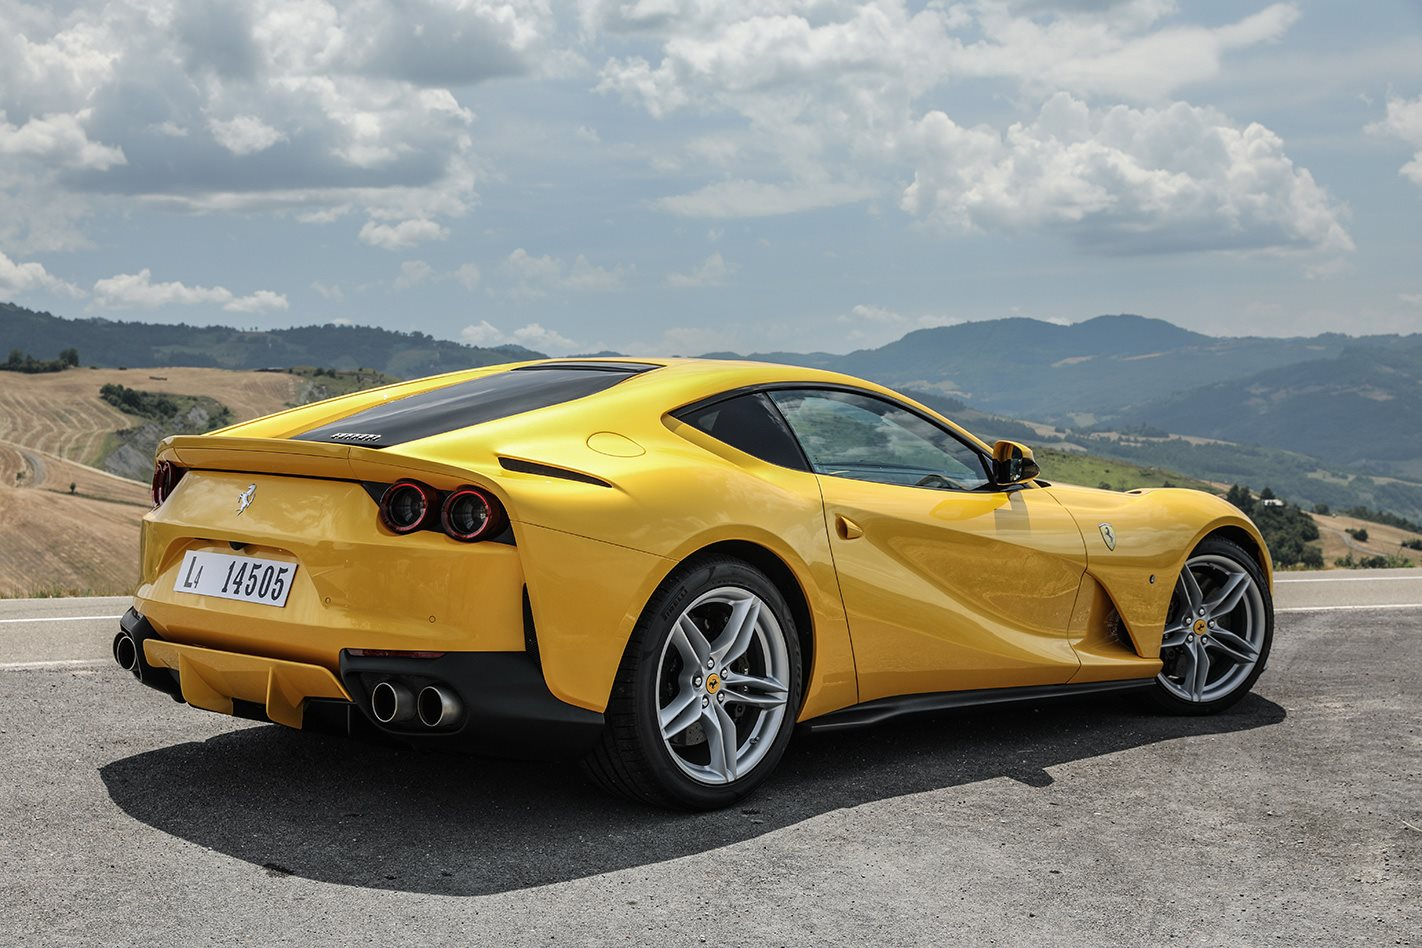 2018 Ferrari 812 Superfast rear facing.jpg